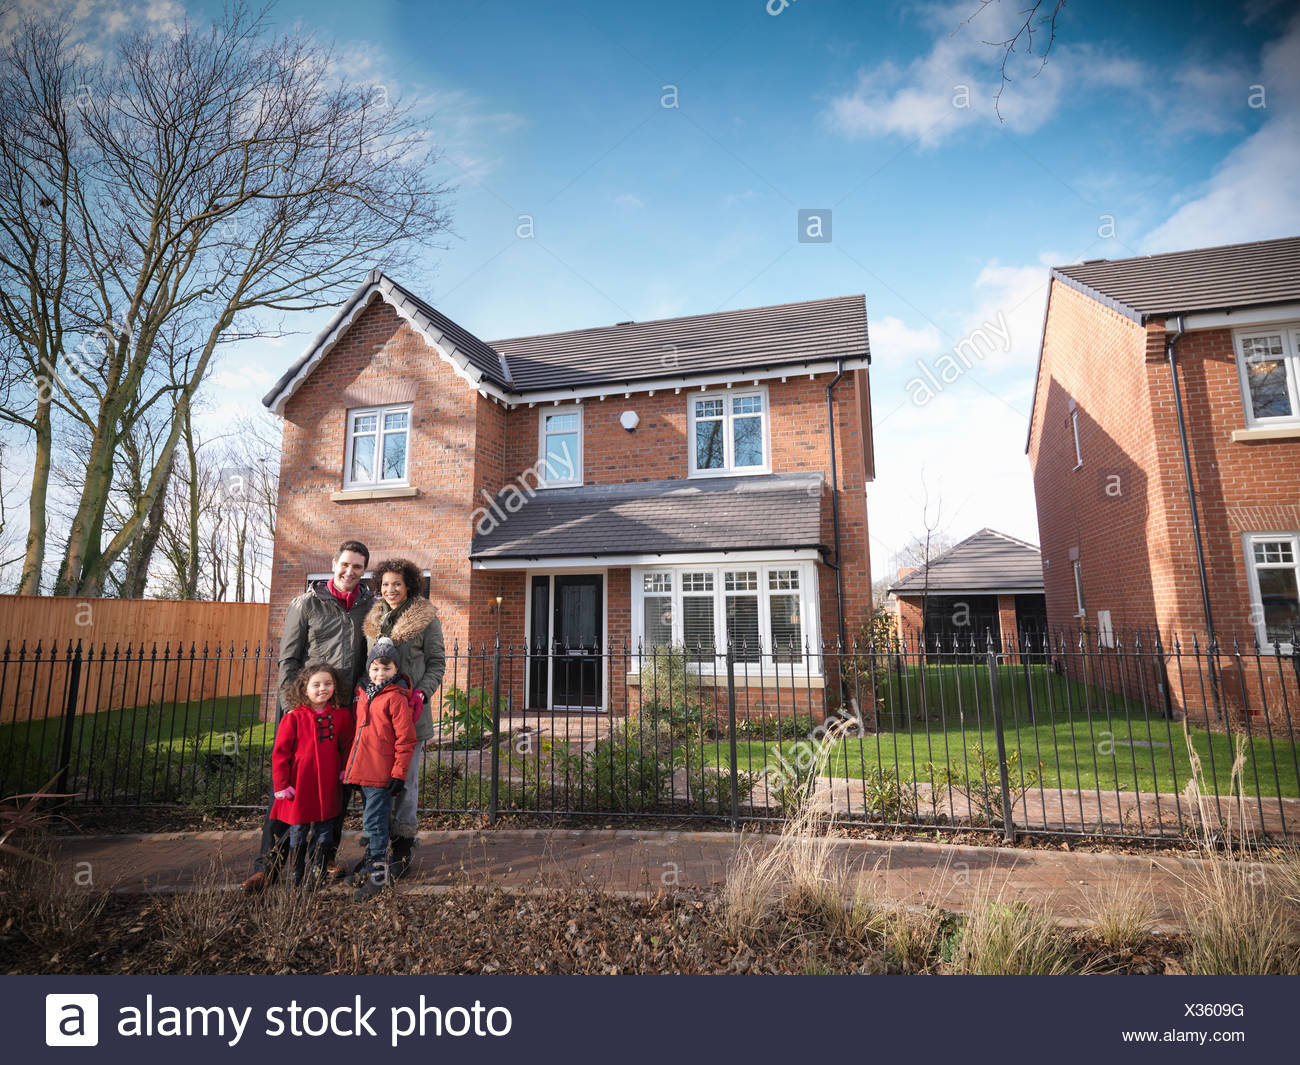 Family smiling outside house Photo Stock